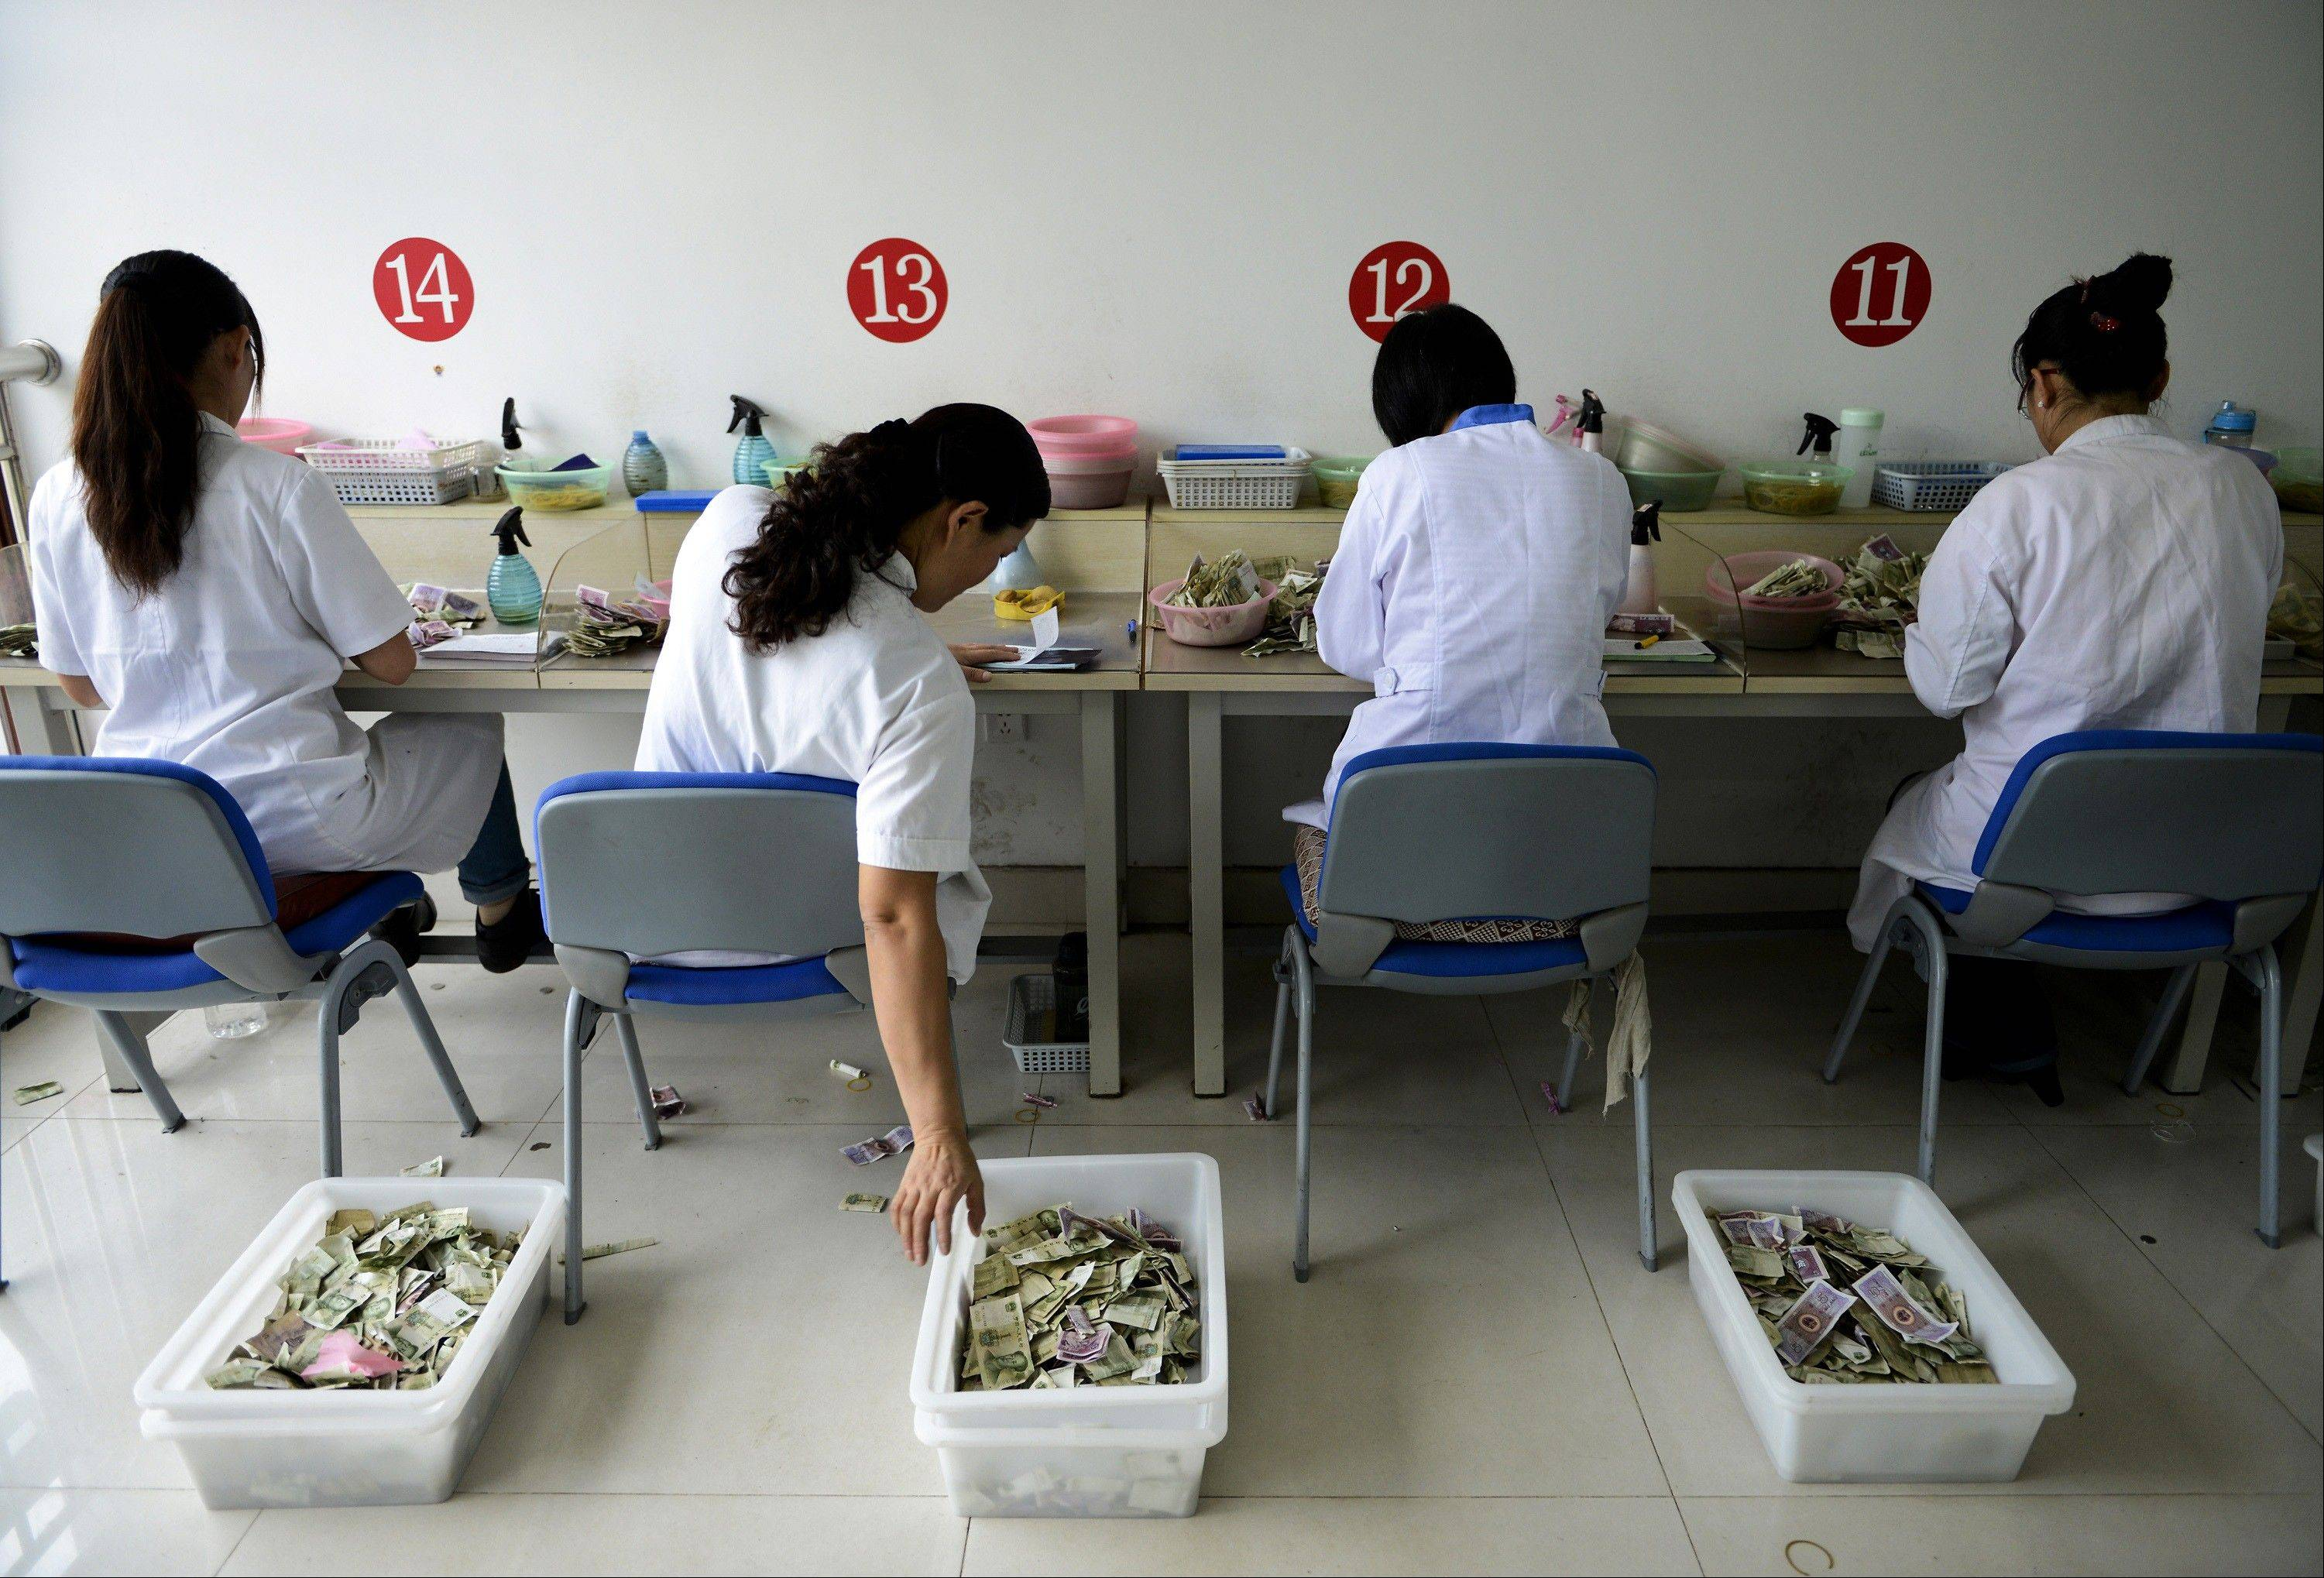 Workers count the small currency notes from bus fares at the accounting center of a bus company in Rizhao city in east China's Shandong province.